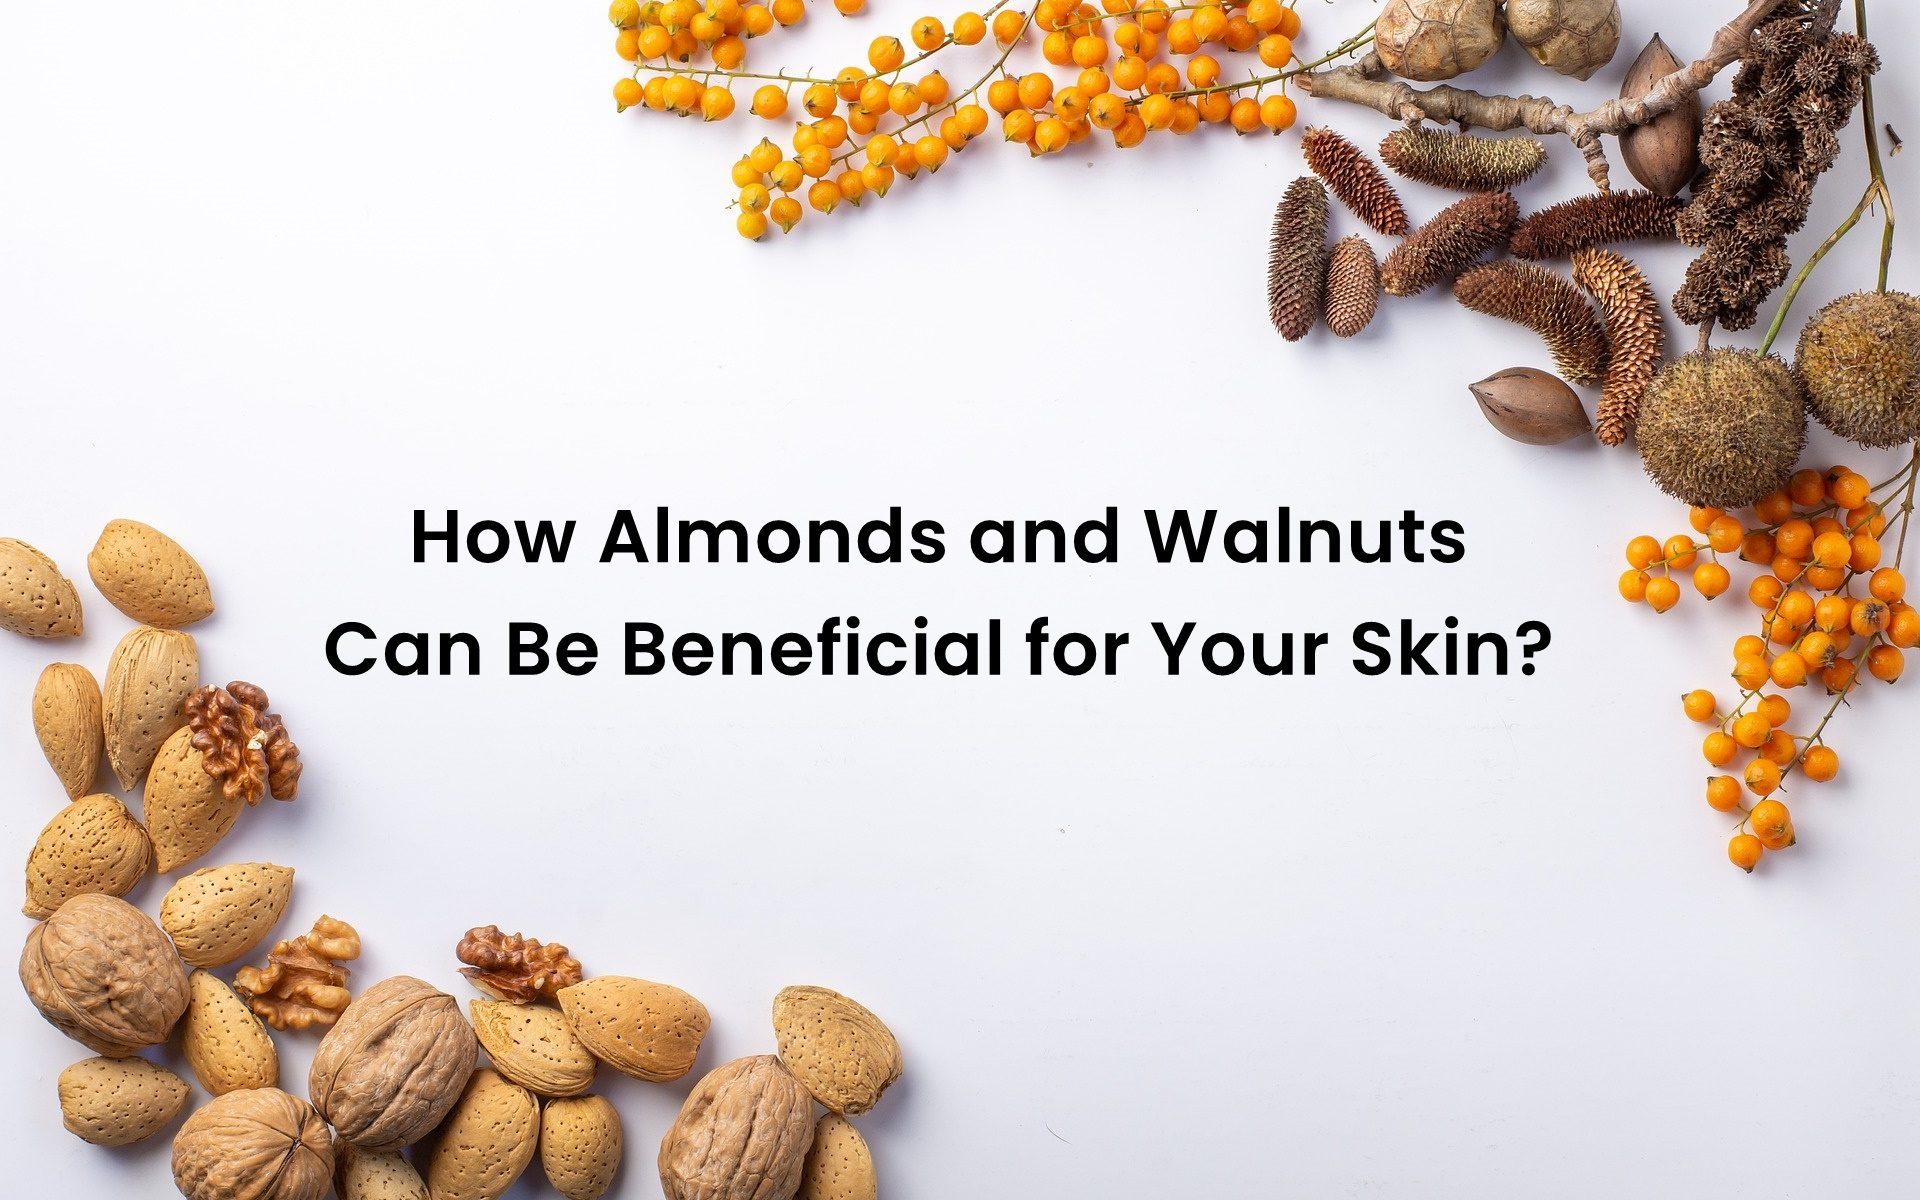 How Almonds and Walnuts Can Be Beneficial for Your Skin?